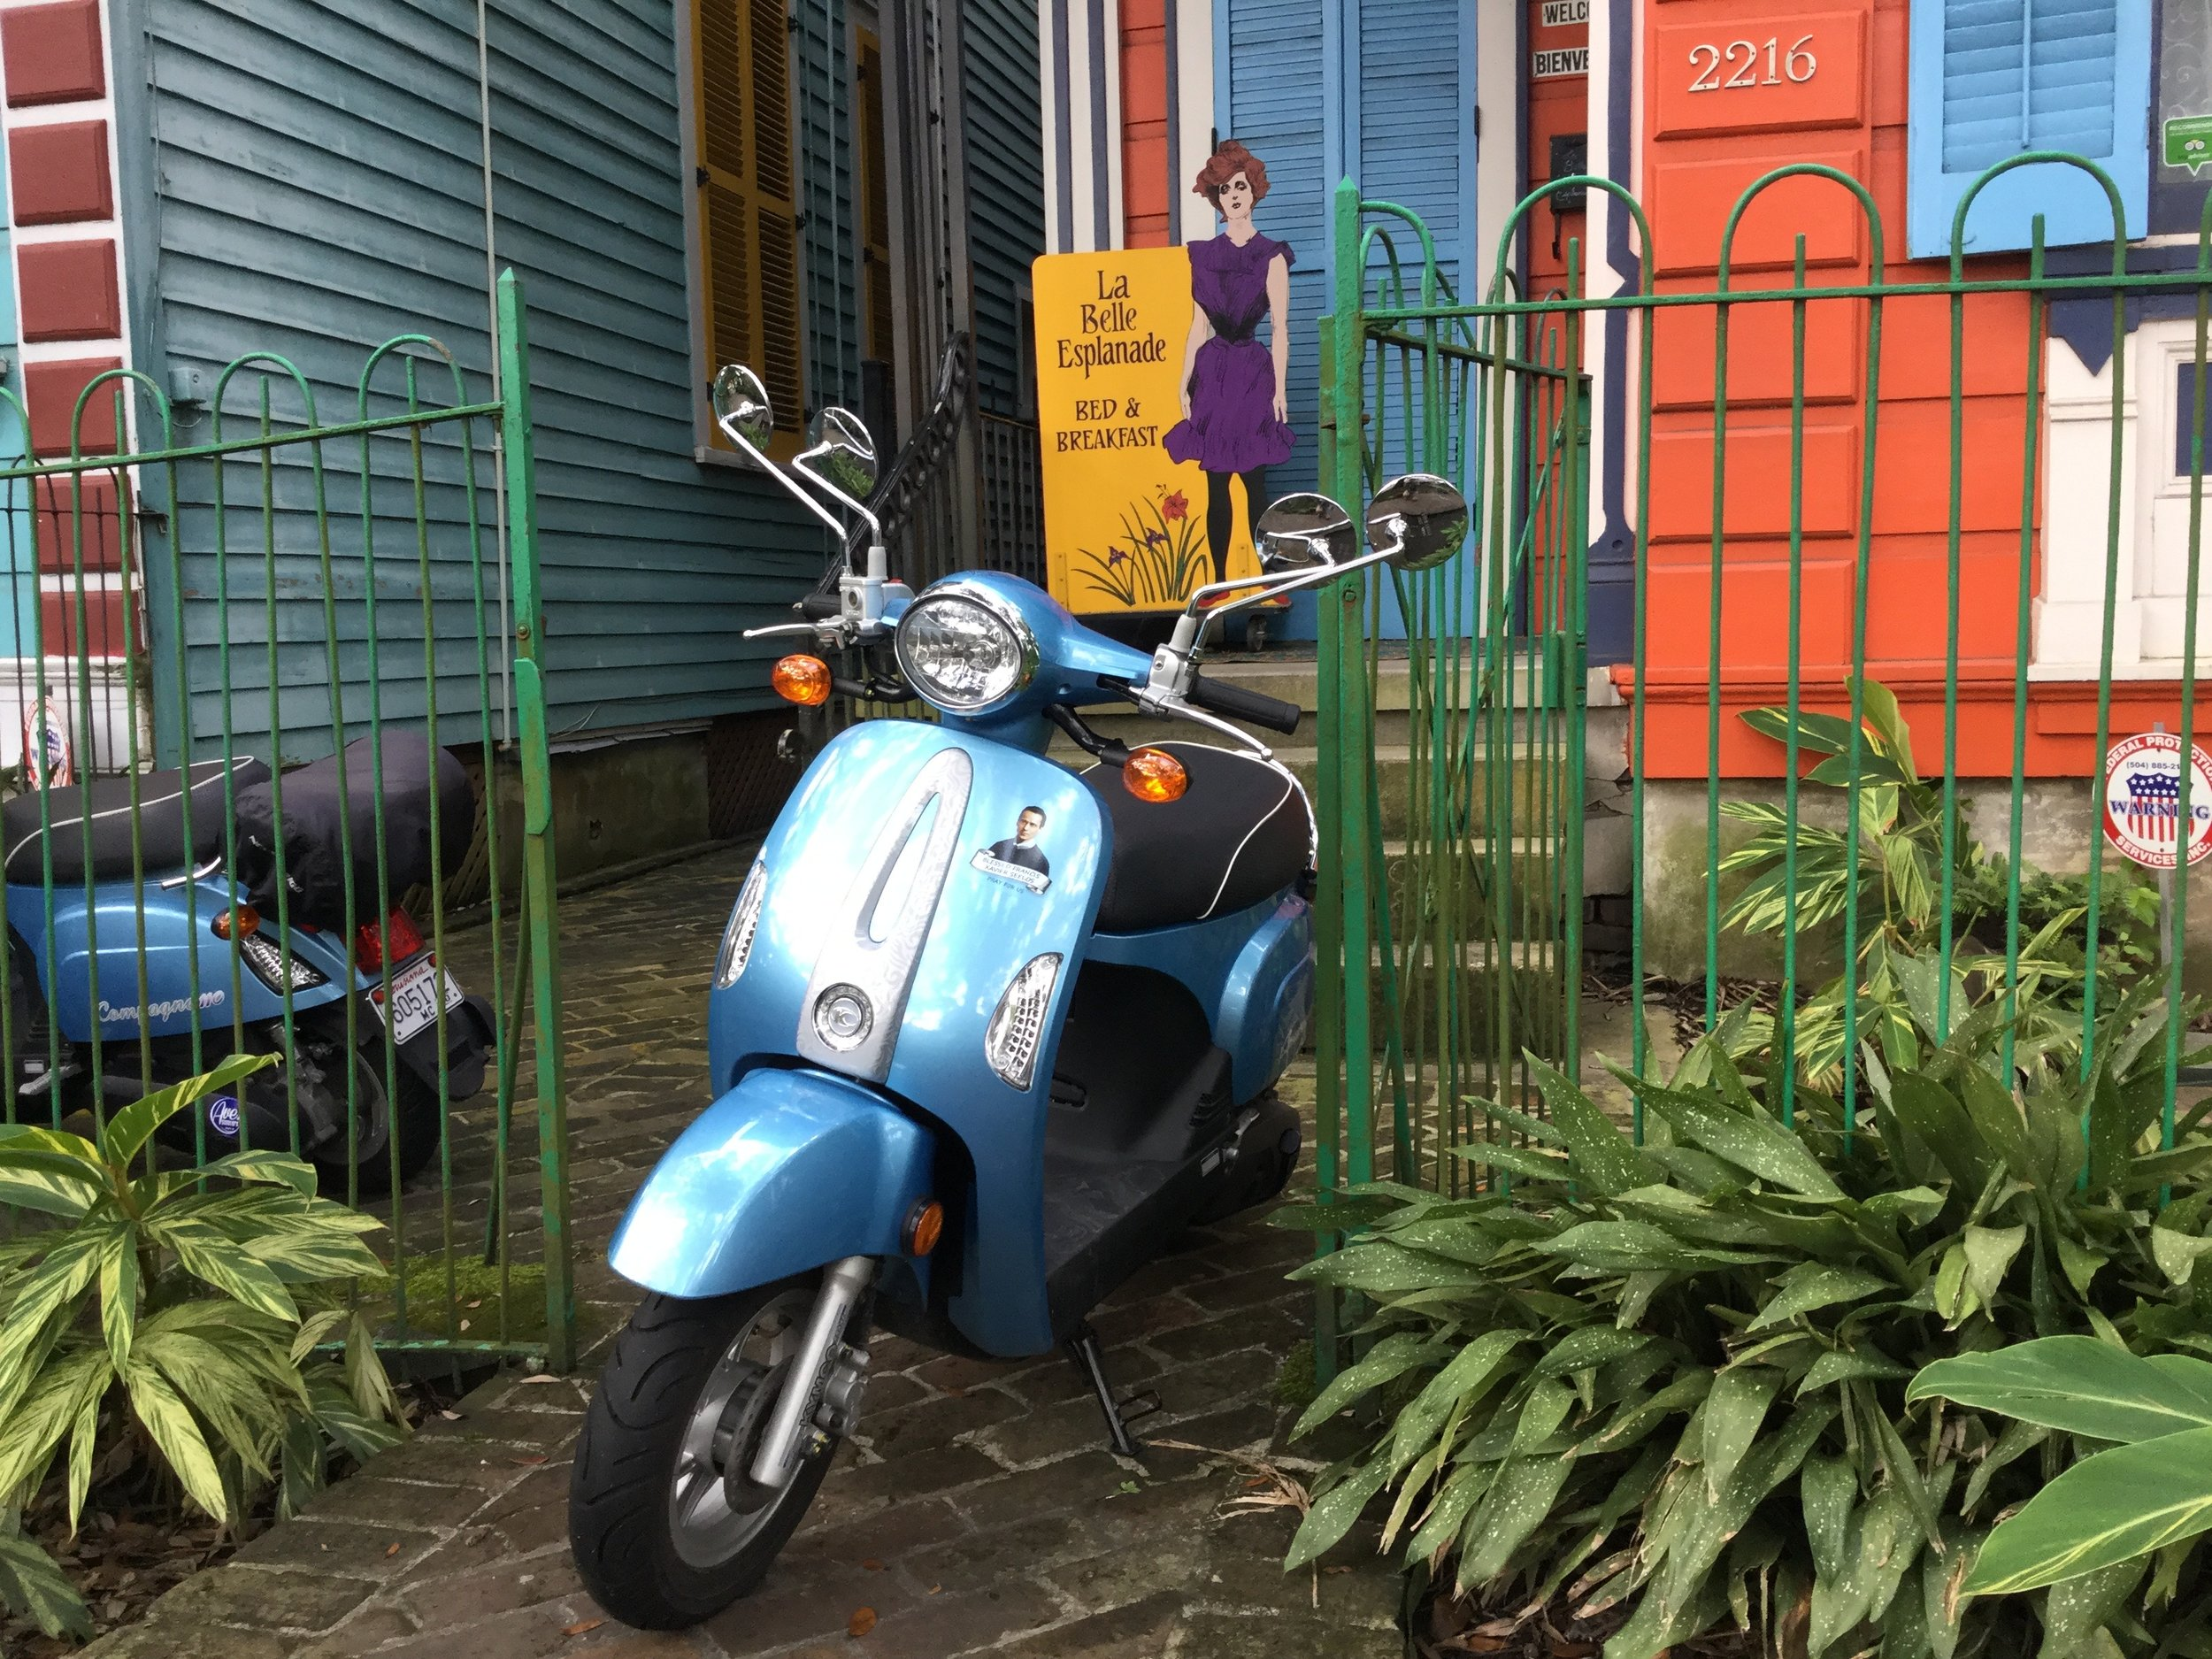 A motor scooter on the 2200 block of Esplanade Avenue.